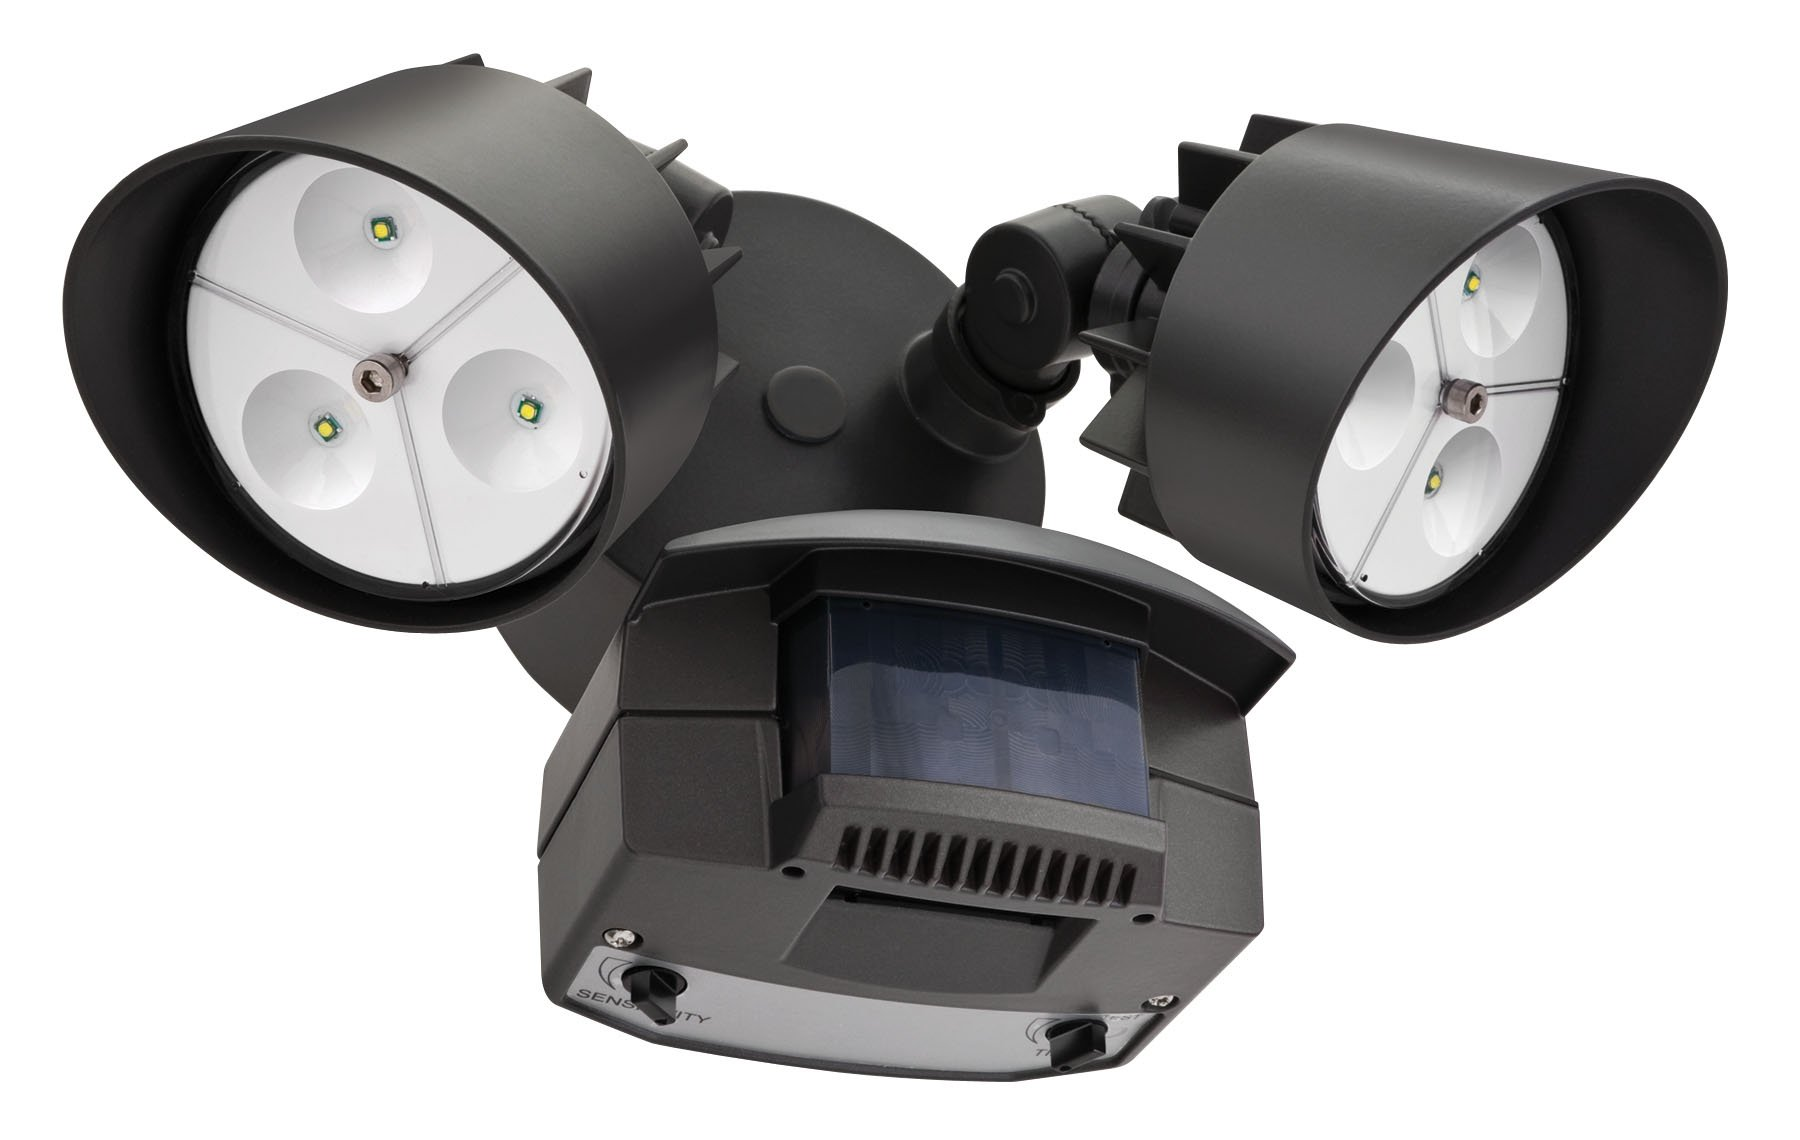 Lithonia Lighting OFLR 6LC 120 MO BZ LED Outdoor Floodlight 2-Light Motion Sensor, Black Bronze by Lithonia Lighting